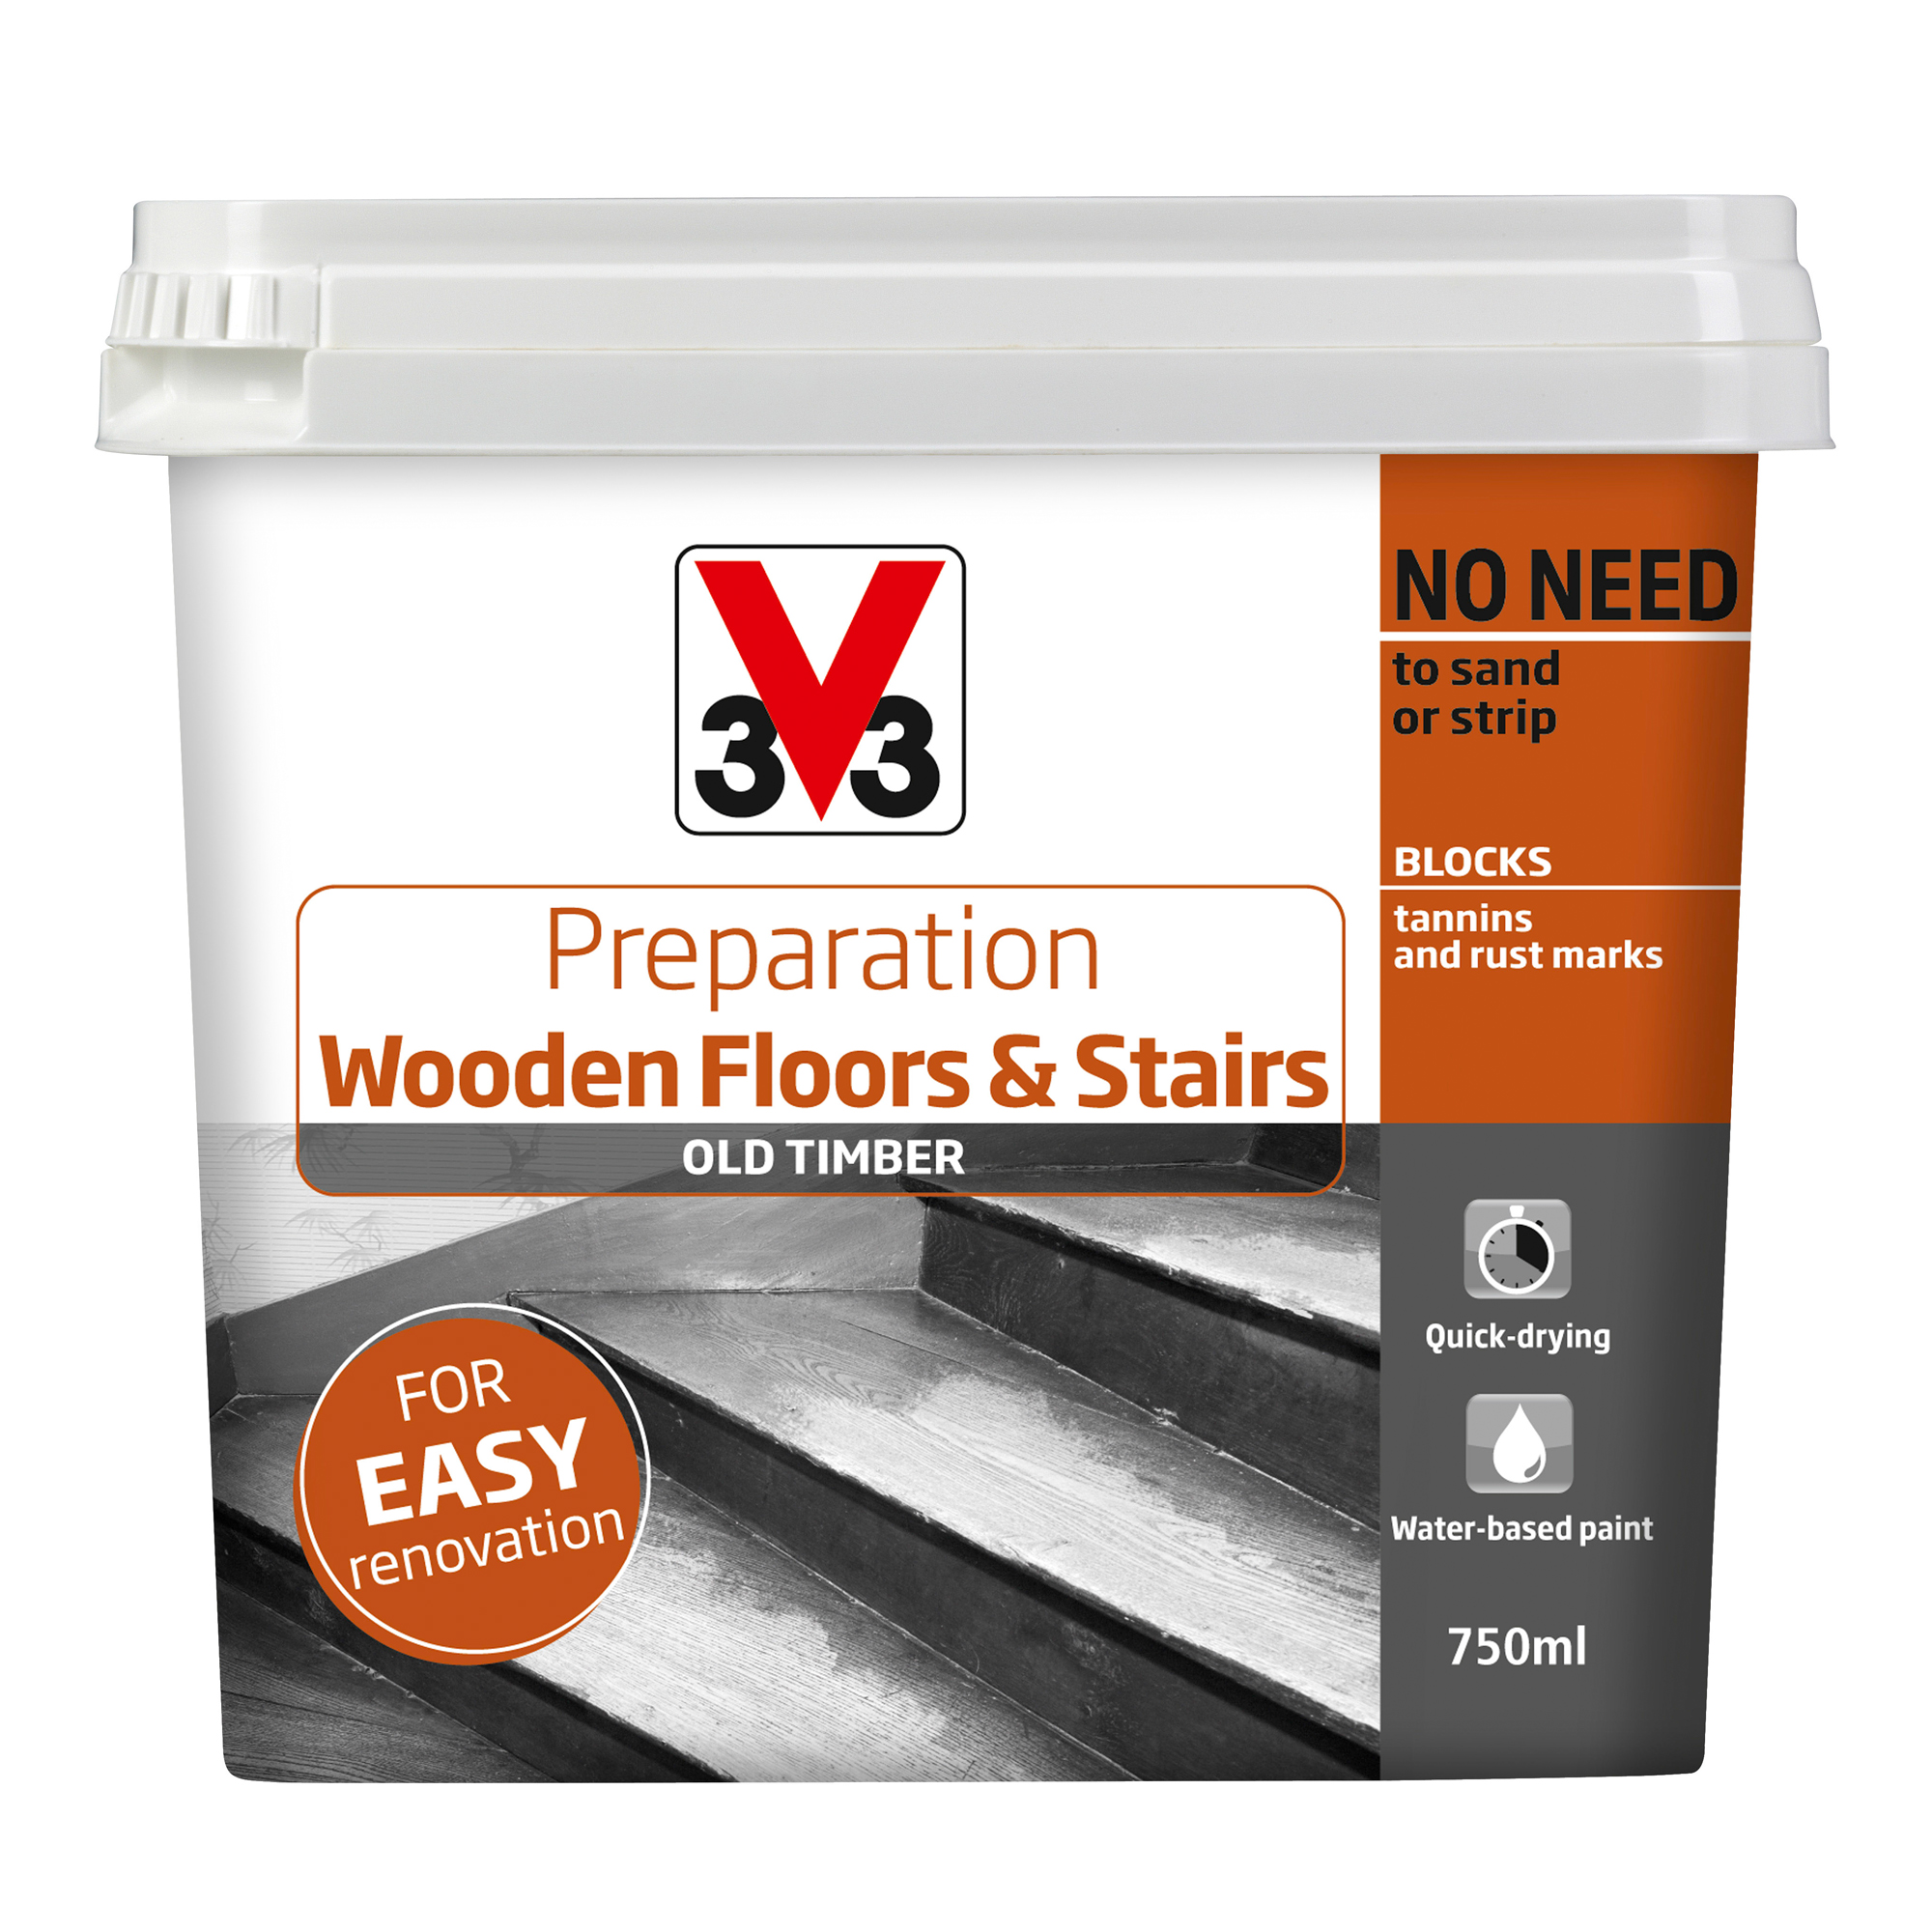 v33 preparation wooden floors stairs